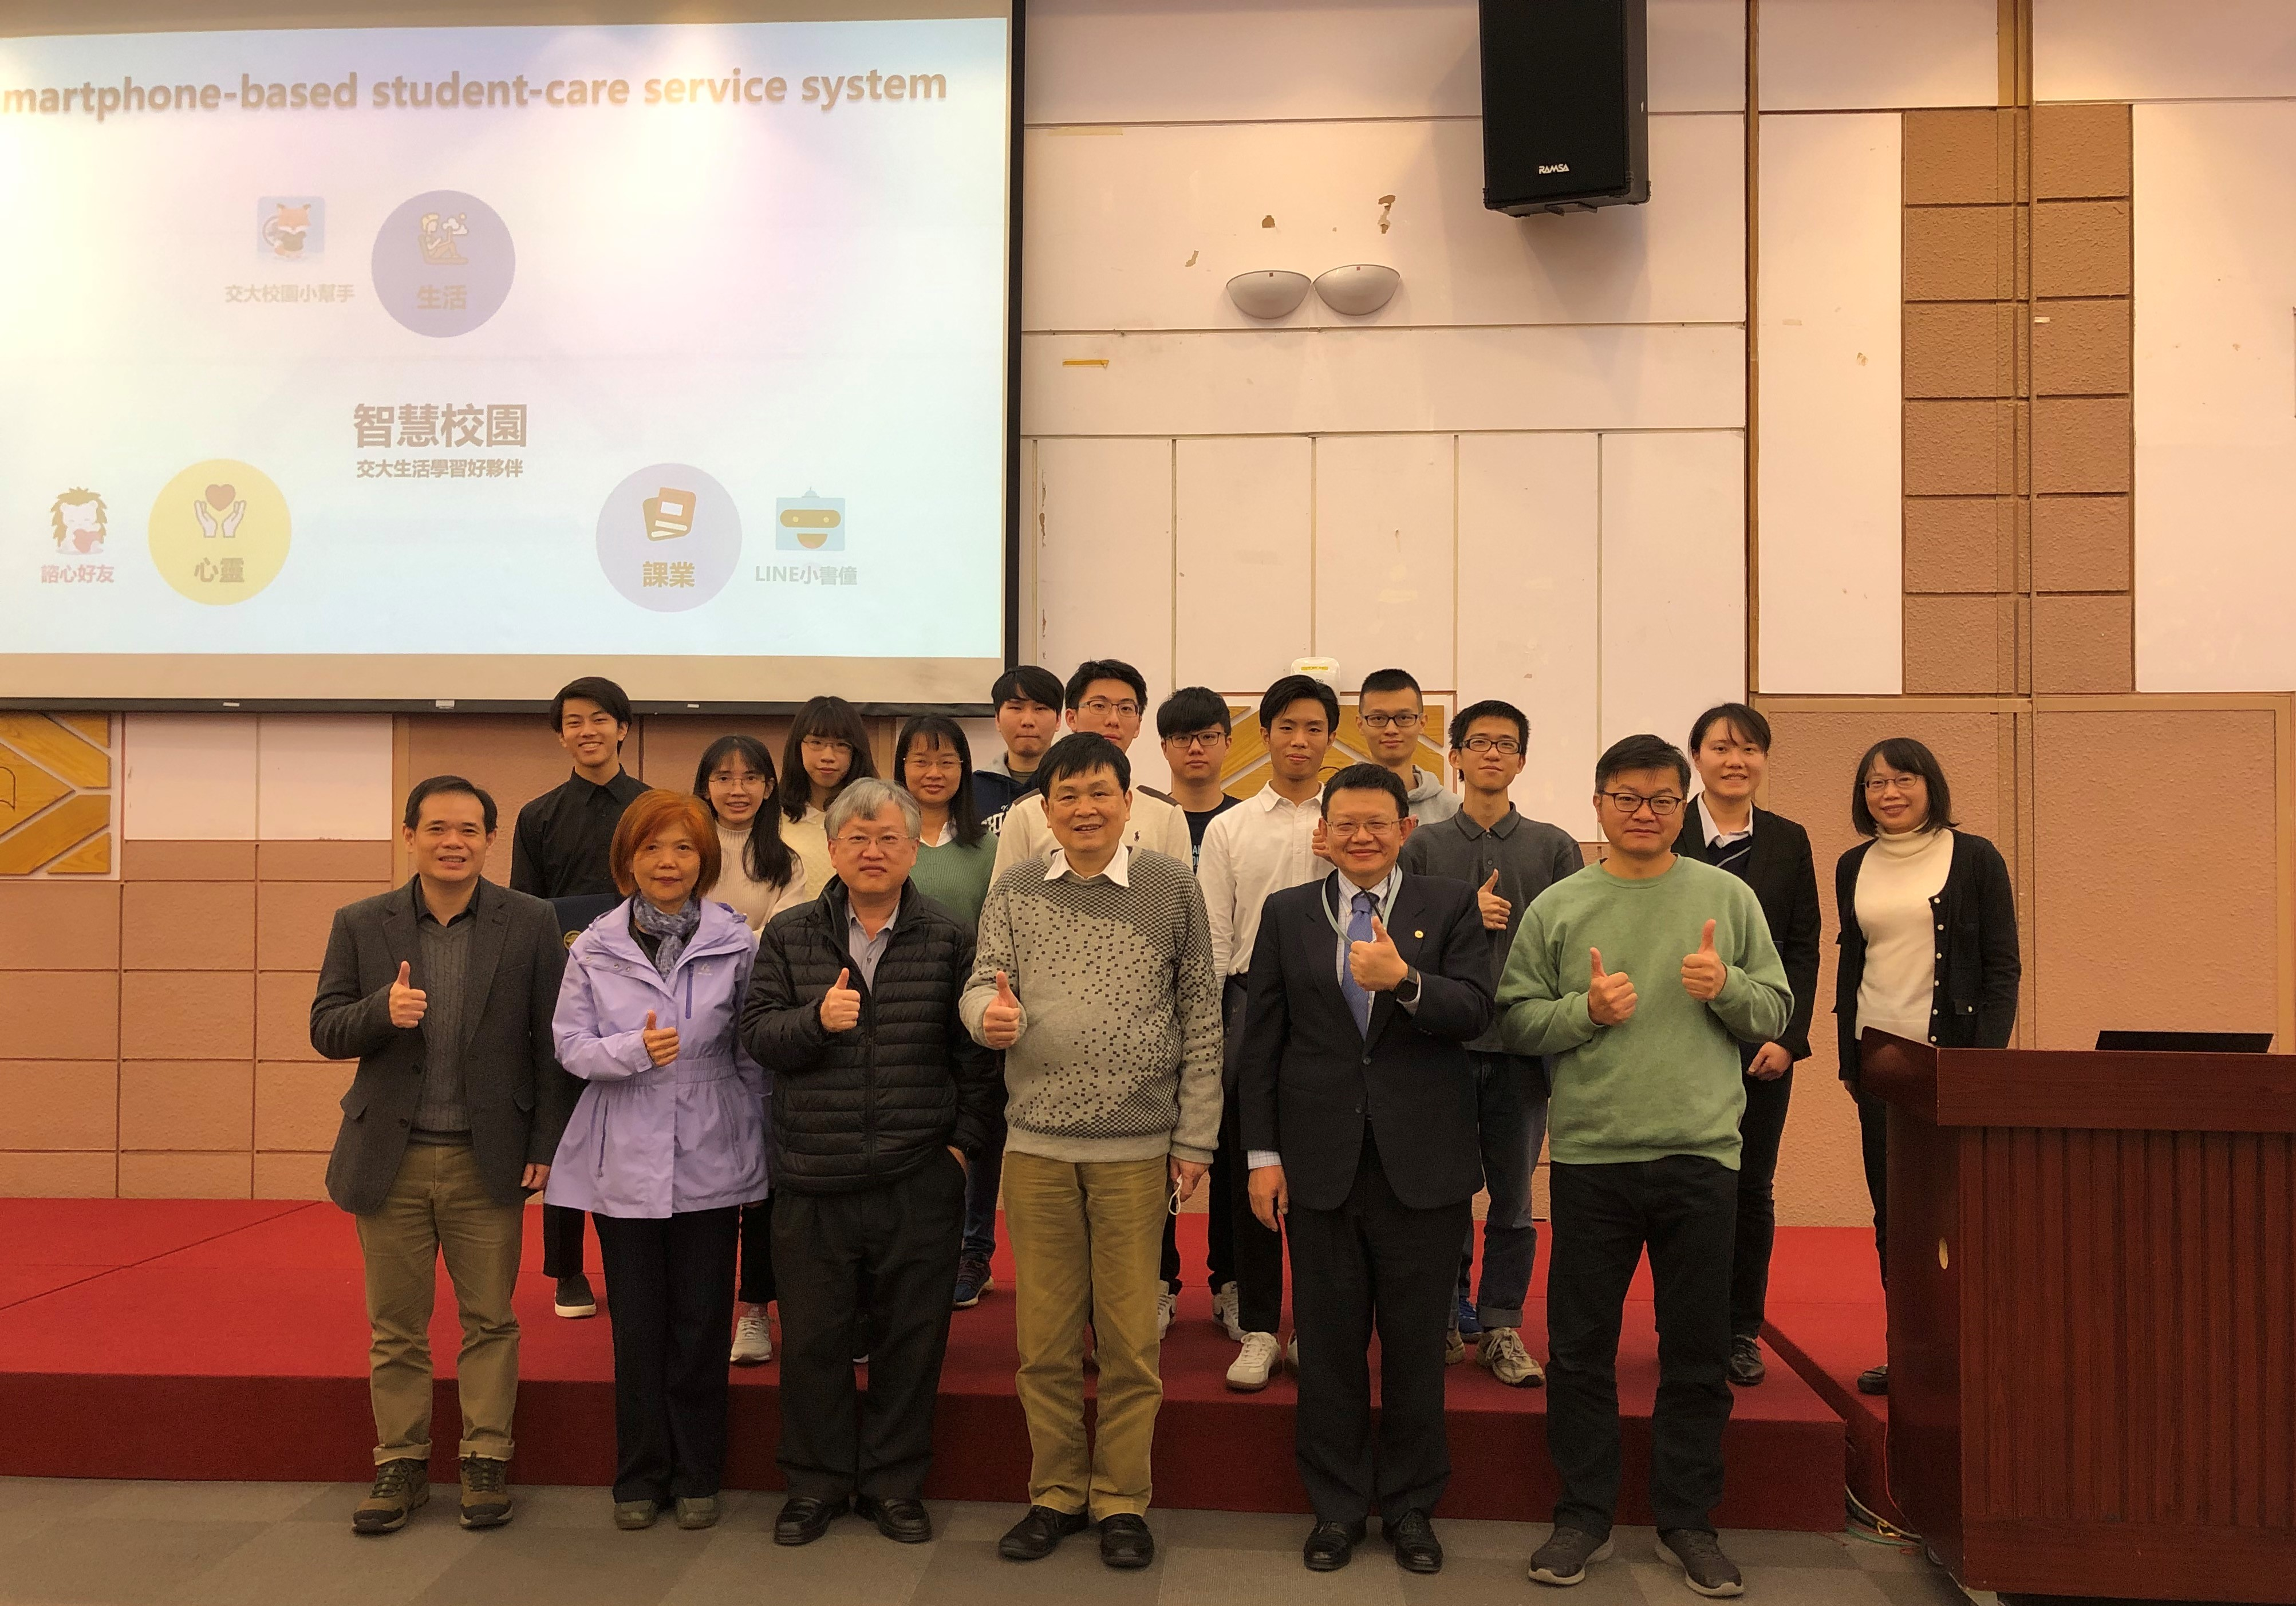 2021-02-01 Official Launch of National Chiao Tung University Chatbots to Provide Student Care